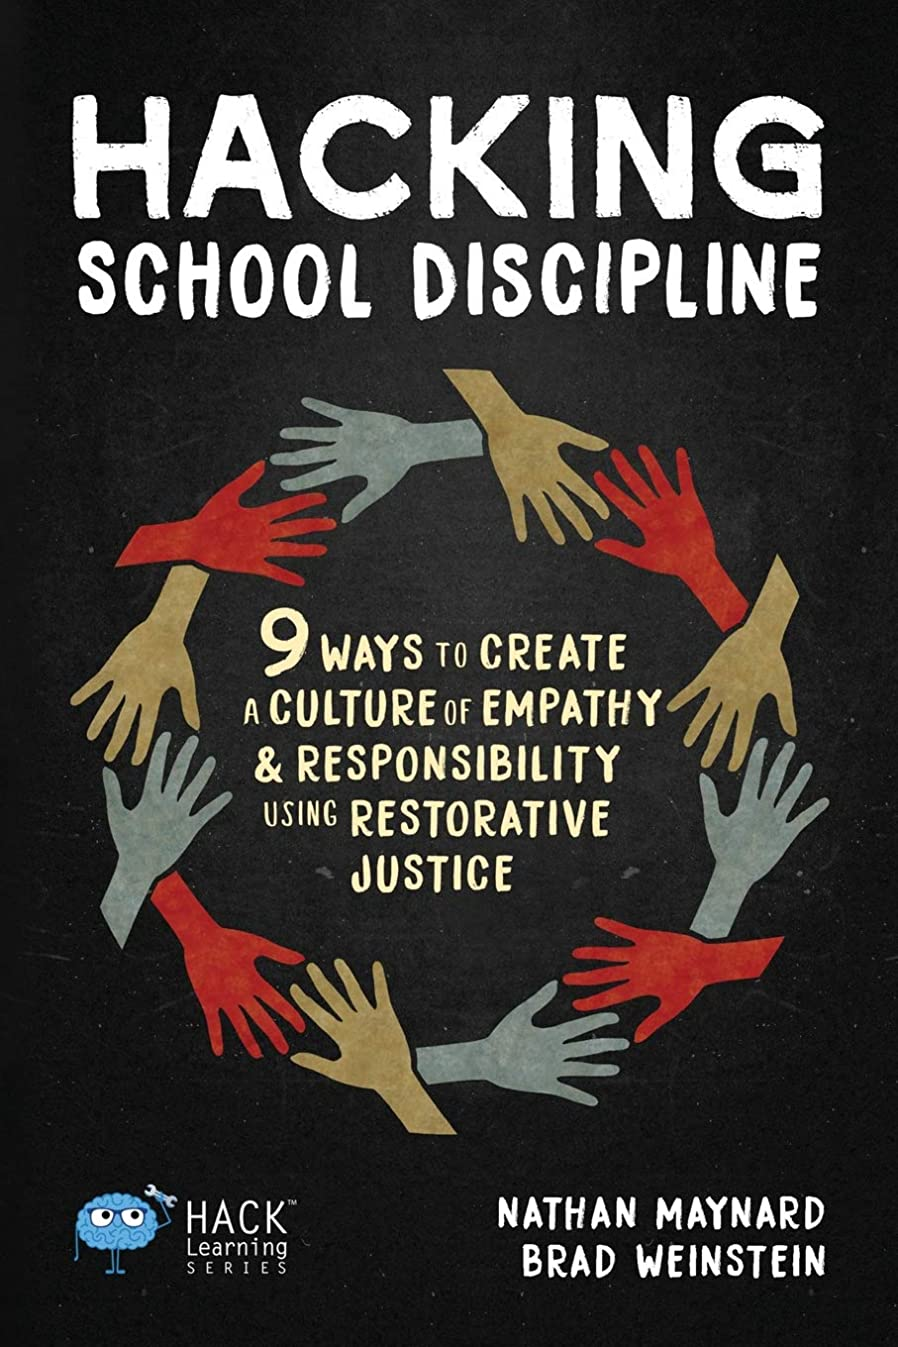 任命報復するヘルパーHacking School Discipline: 9 Ways to Create a Culture of Empathy and Responsibility Using Restorative Justice (Hack Learning Series)